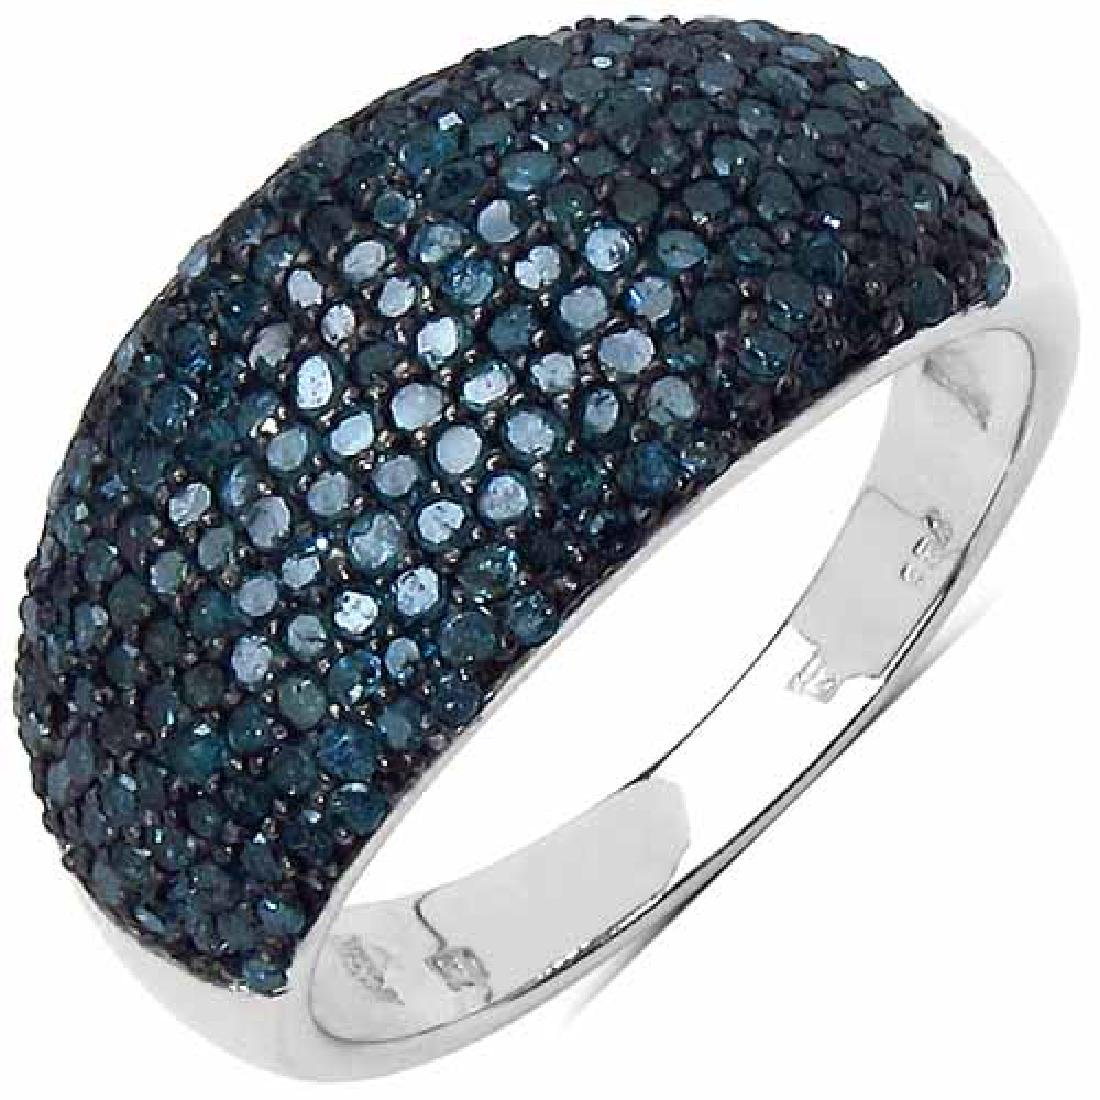 0.99 Carat Genuine Blue Diamond Sterling Silver Ring